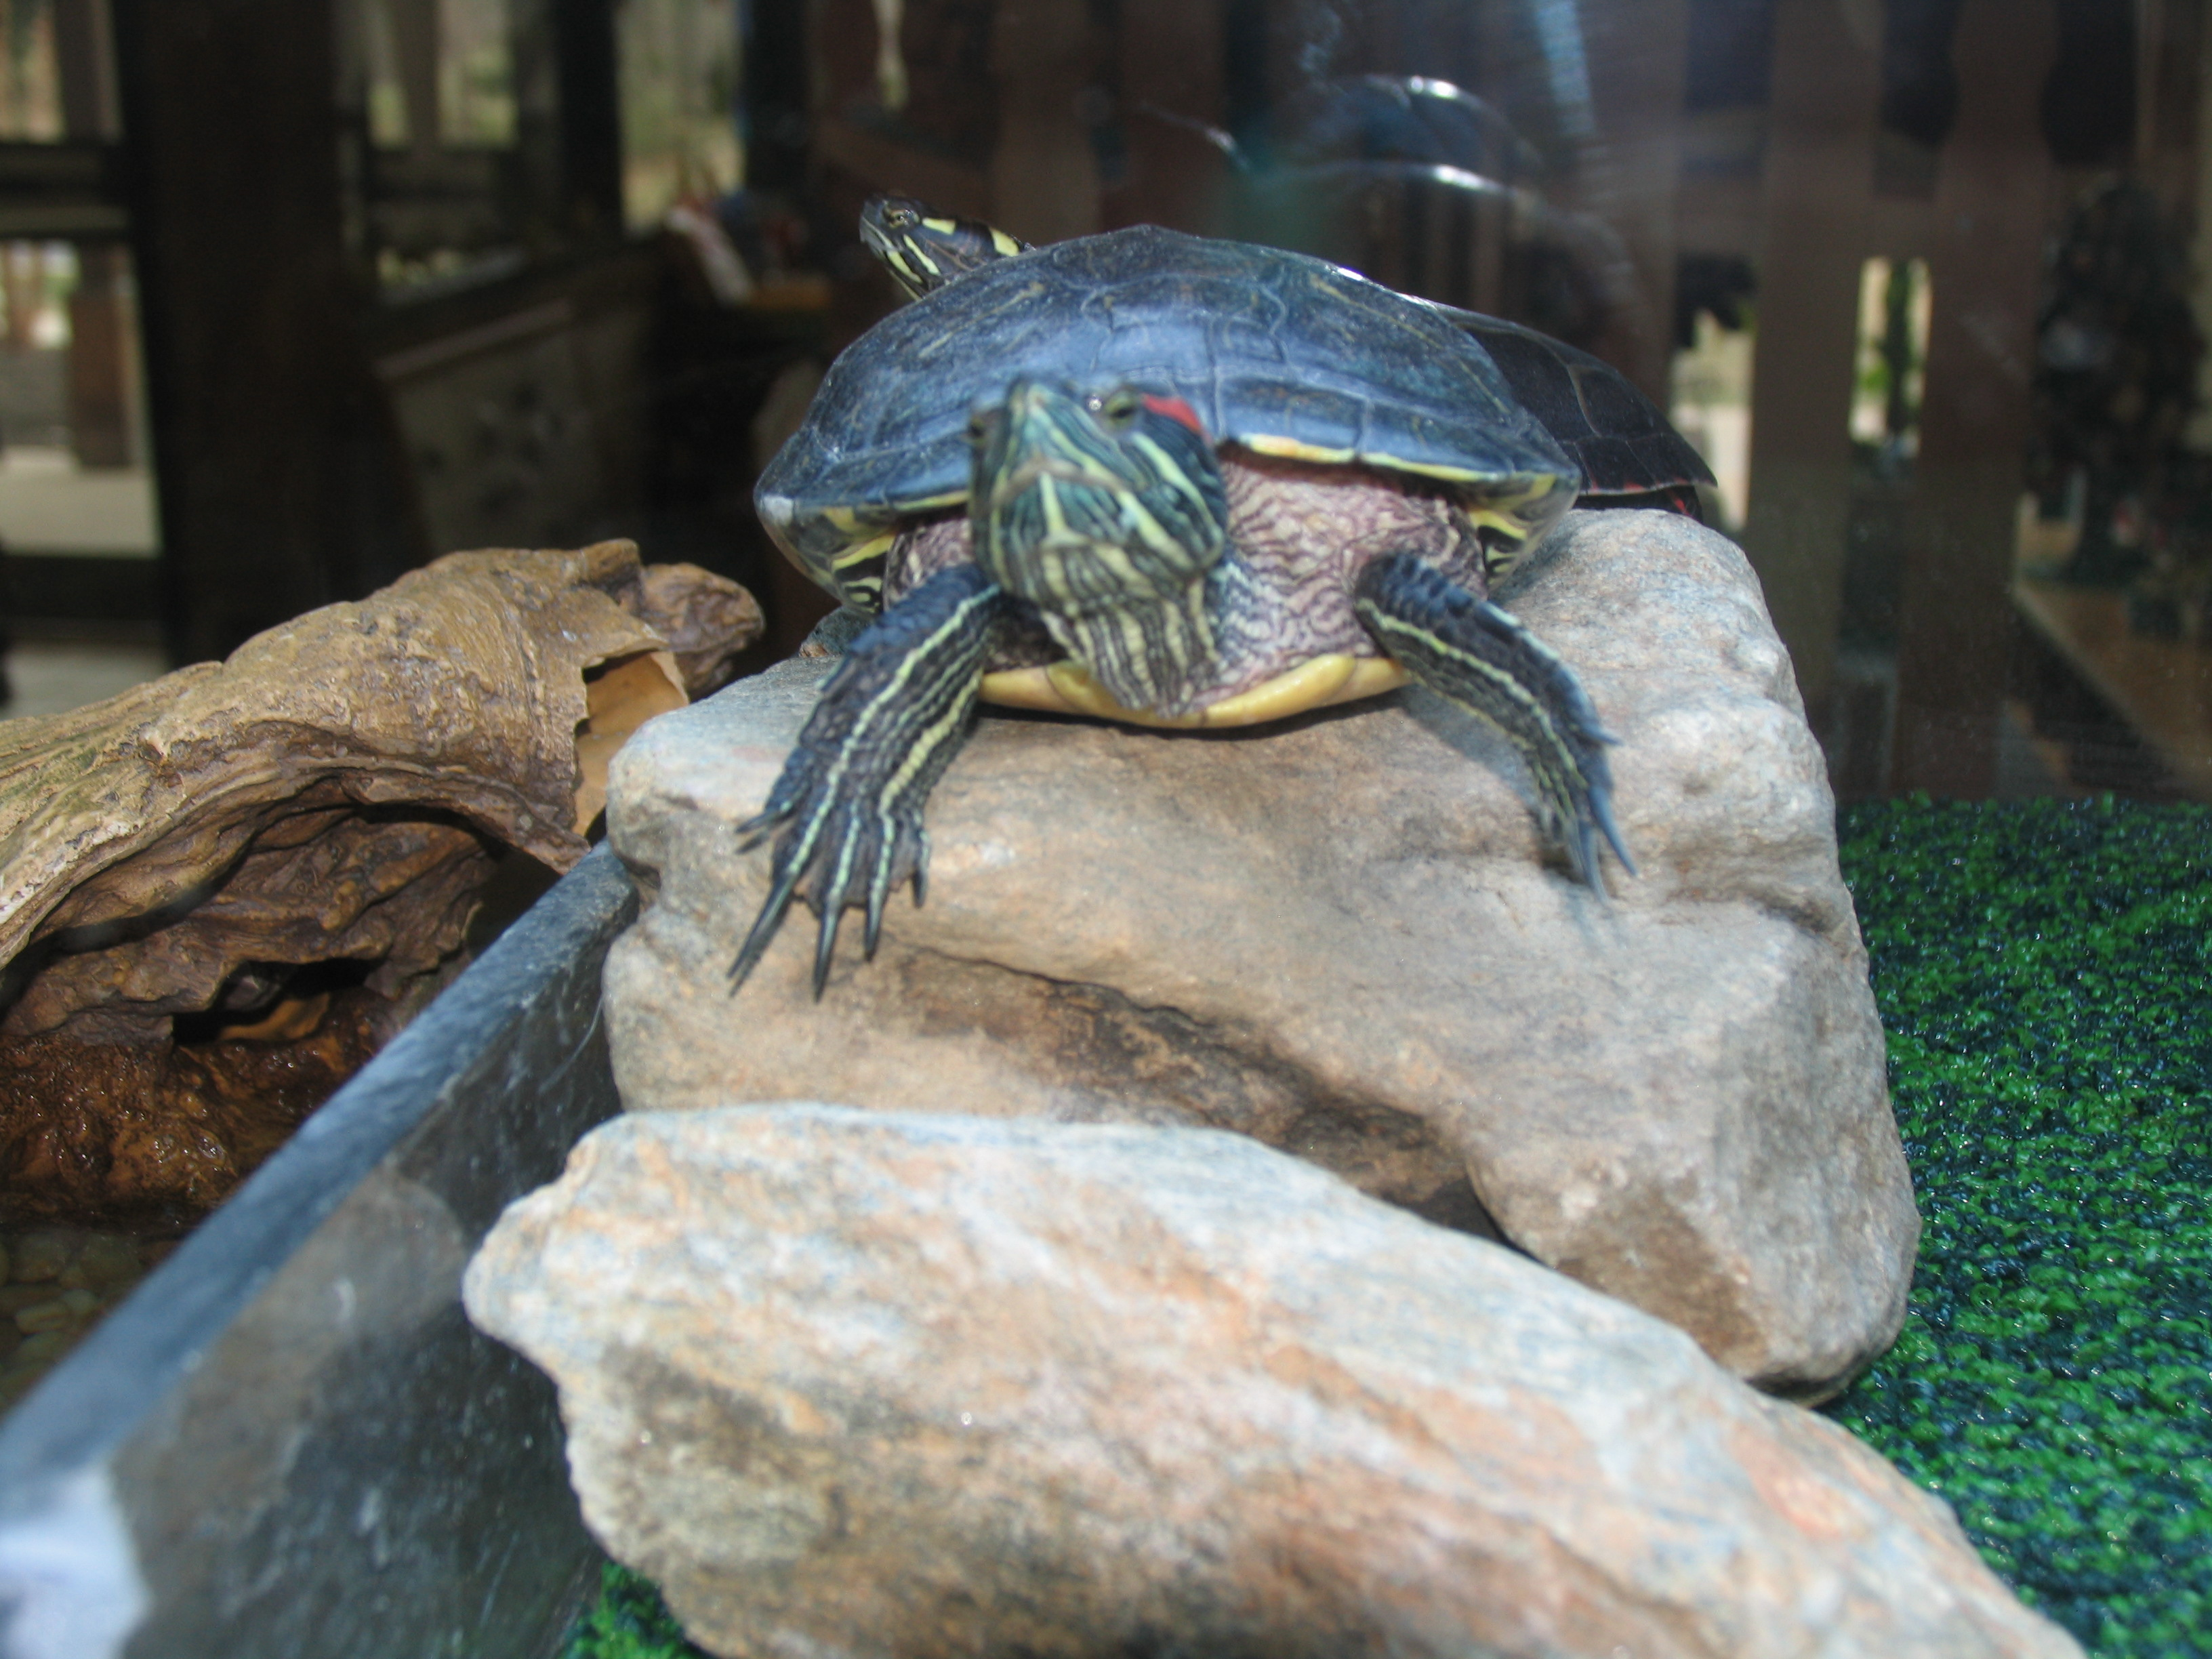 Diamondback Terrapin sitting on a rock